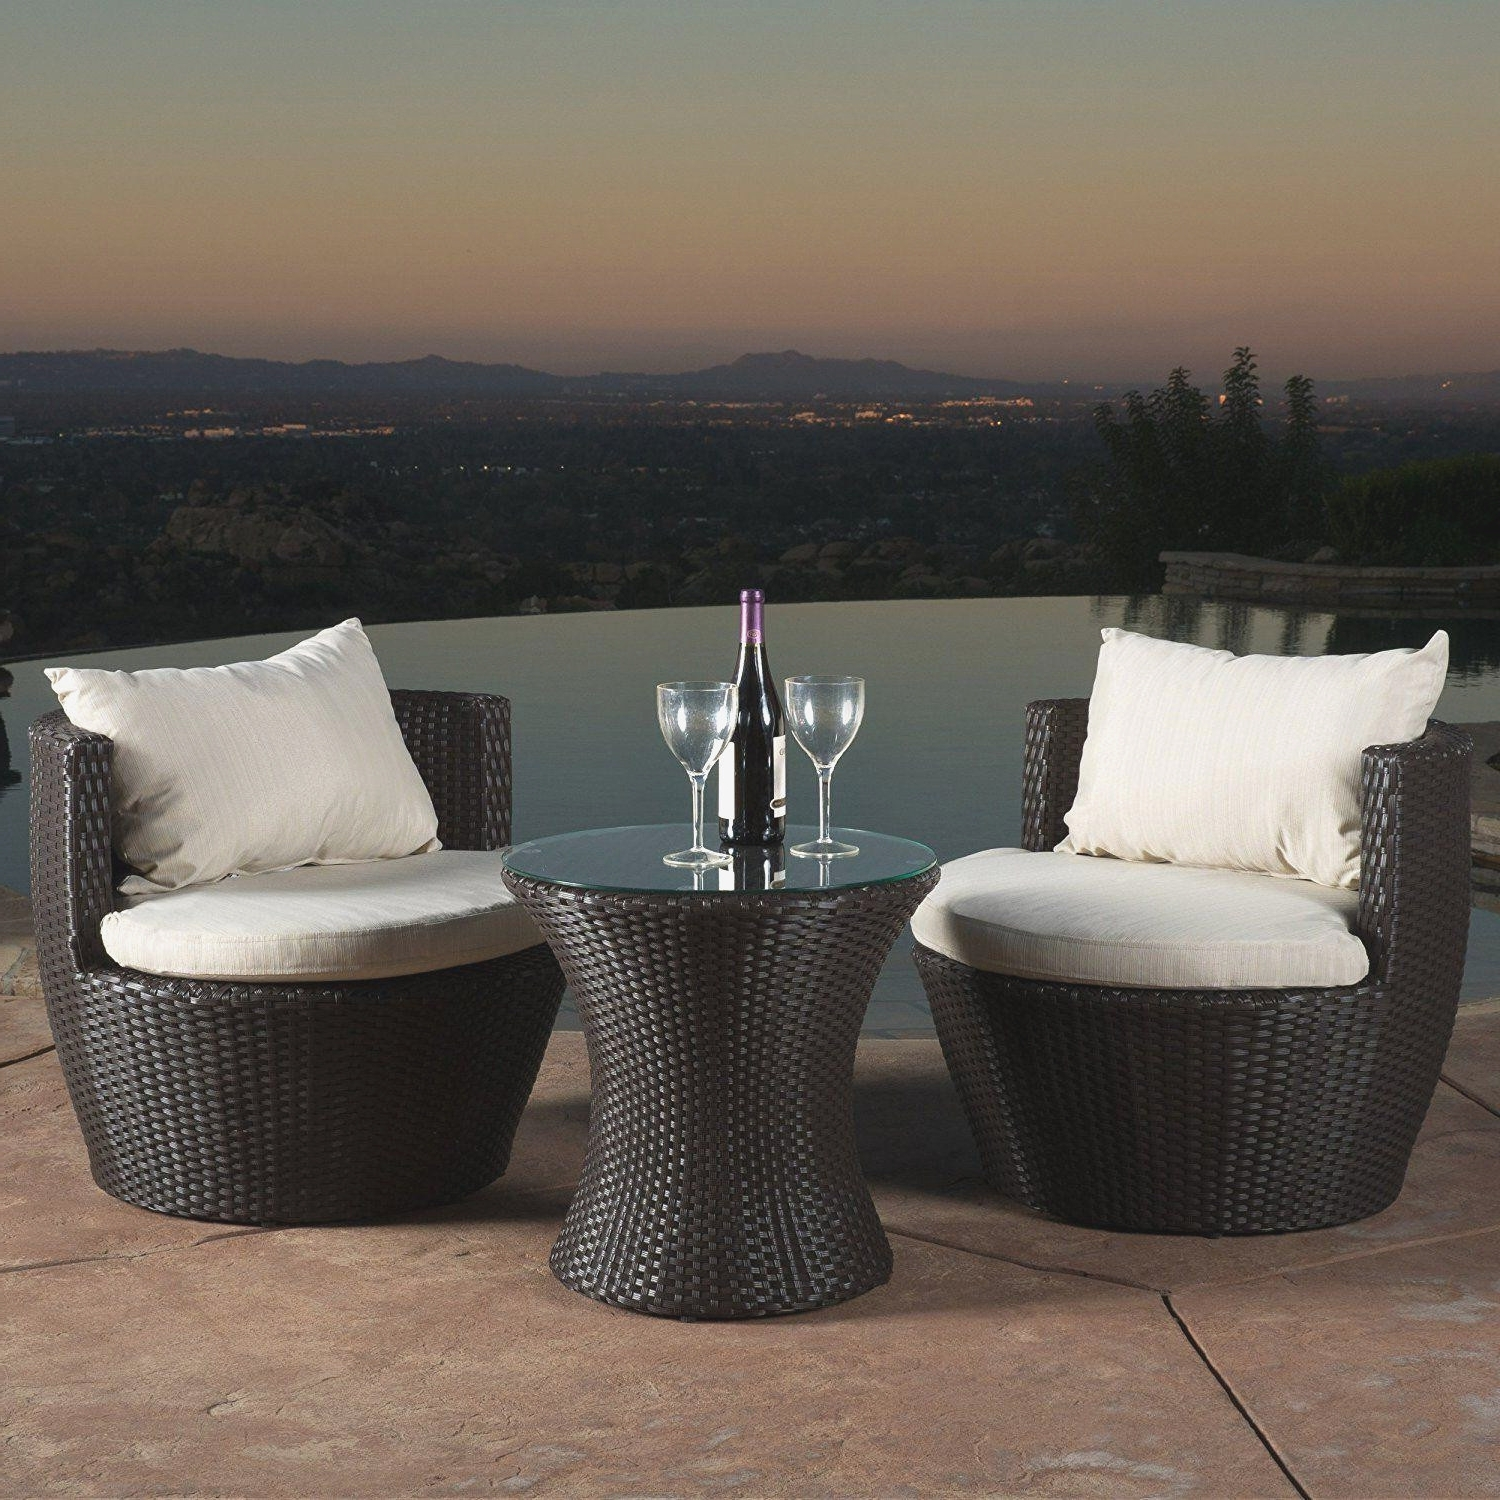 Kirkland Patio Umbrellas In Well Known Costco Outdoor Dining Awesome 30 The Best Teak Patio Furniture (Gallery 14 of 20)